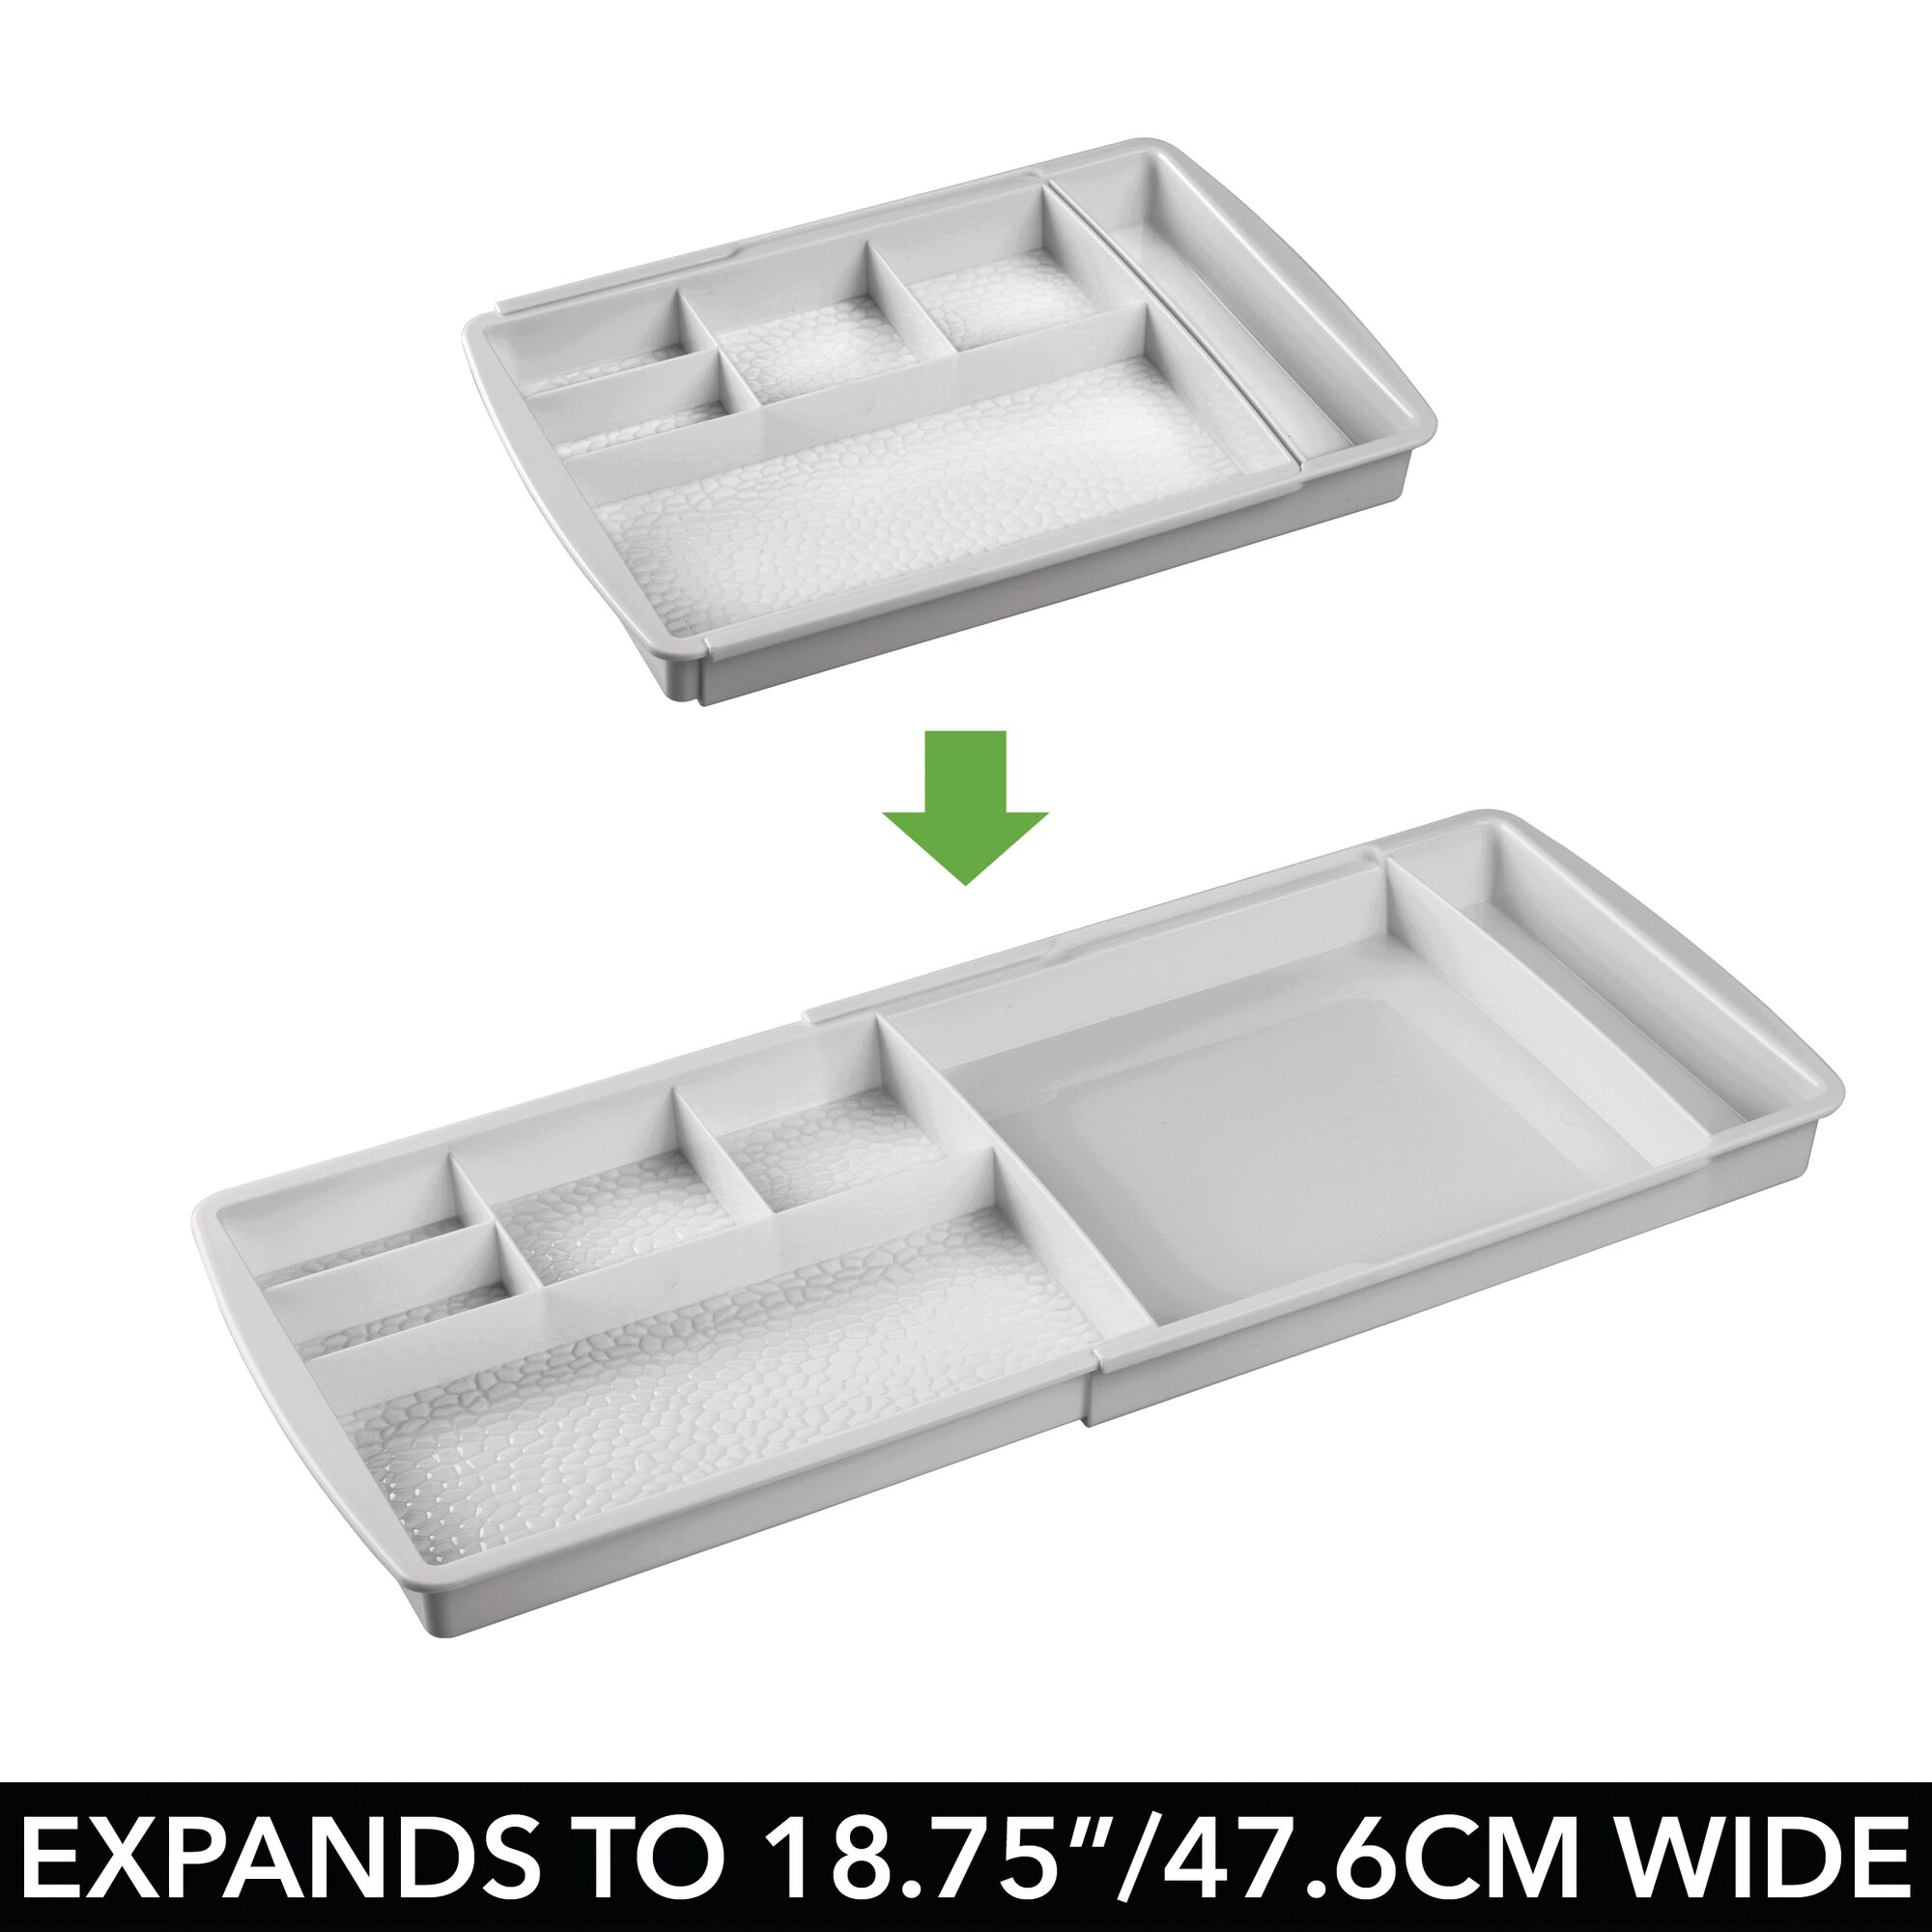 mDesign-Expandable-Makeup-Organizer-Tray-for-Bathroom-Drawers thumbnail 34